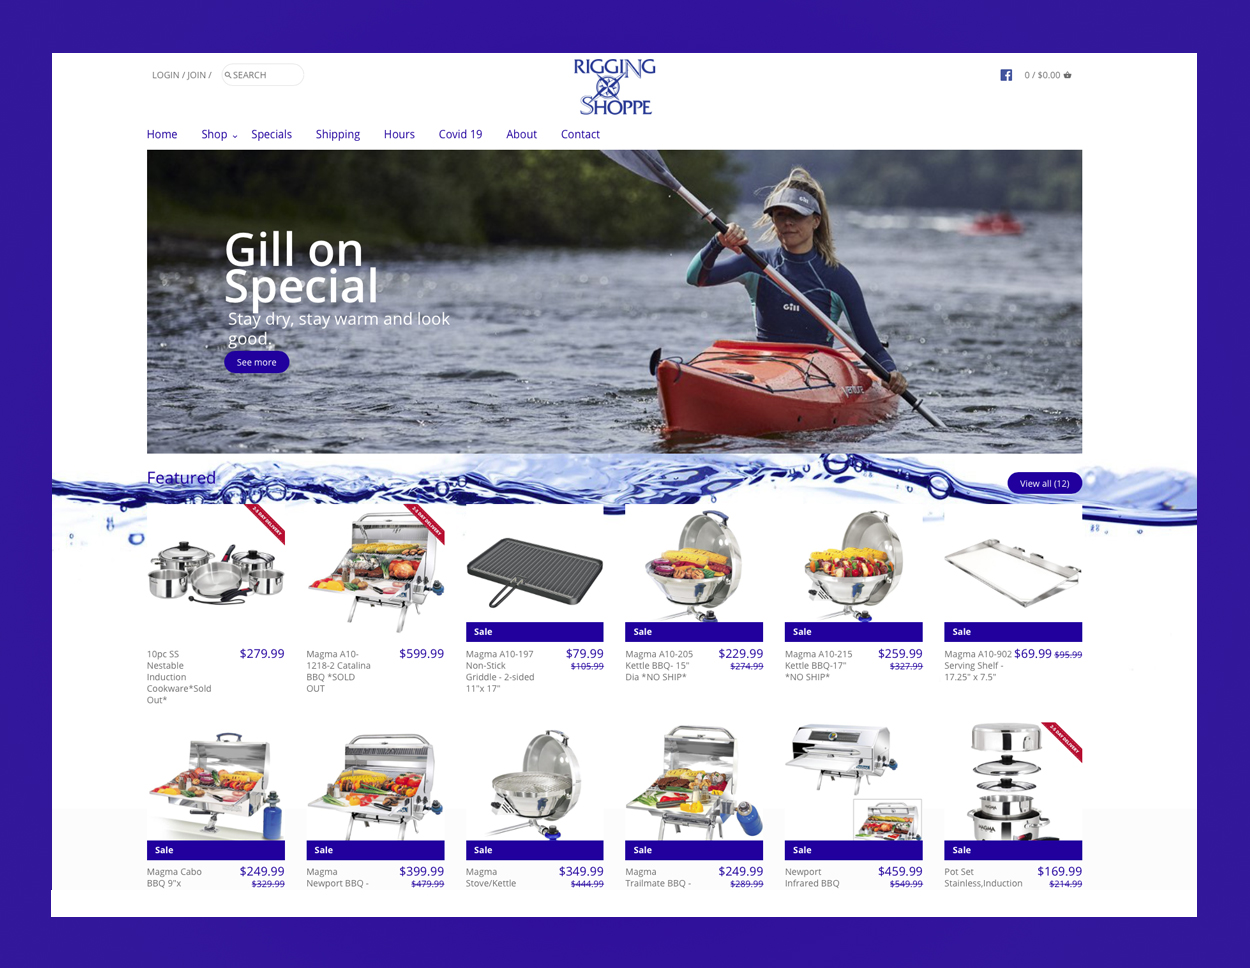 Rigging Shoppe Home Page